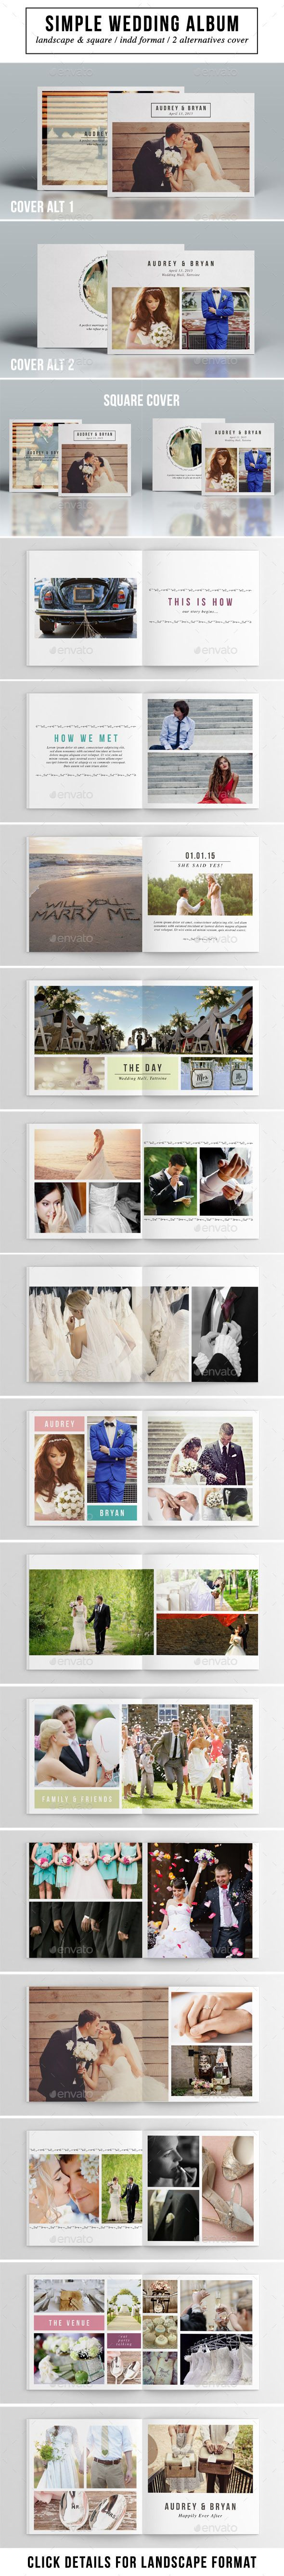 Simple Wedding Album Template #design Download: http://graphicriver.net/item/simple-wedding-album/12646362?ref=ksioks